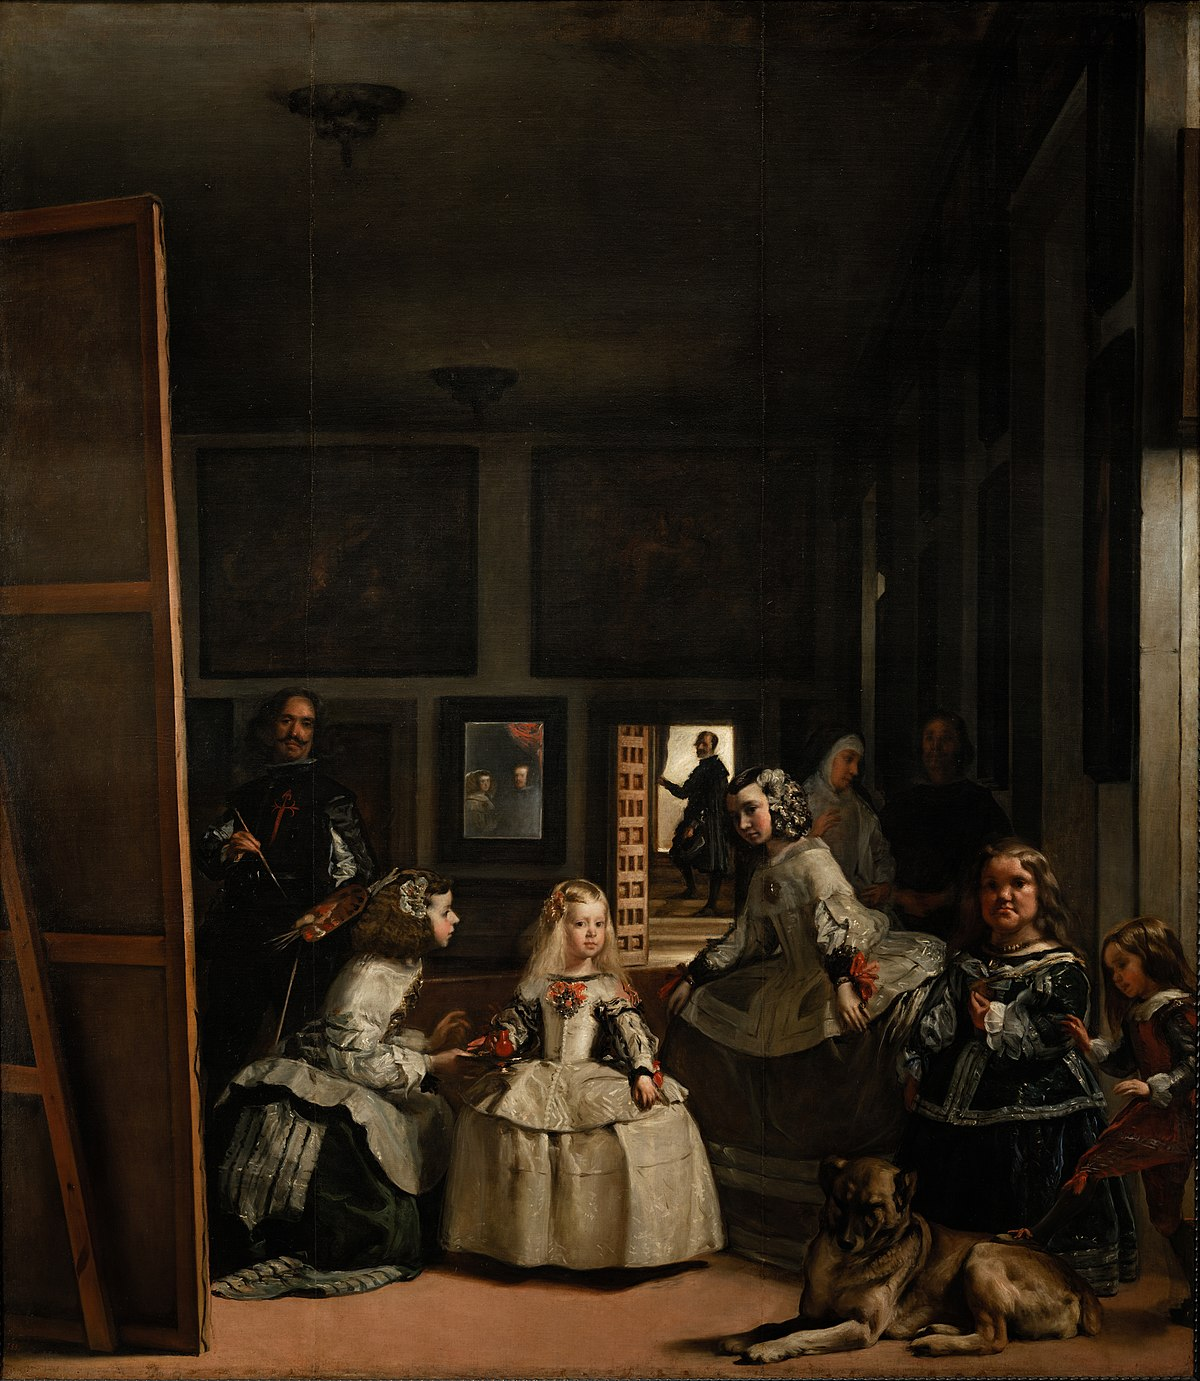 http://upload.wikimedia.org/wikipedia/commons/thumb/3/31/Las_Meninas%2C_by_Diego_Vel%C3%A1zquez%2C_from_Prado_in_Google_Earth.jpg/1200px-Las_Meninas%2C_by_Diego_Vel%C3%A1zquez%2C_from_Prado_in_Google_Earth.jpg